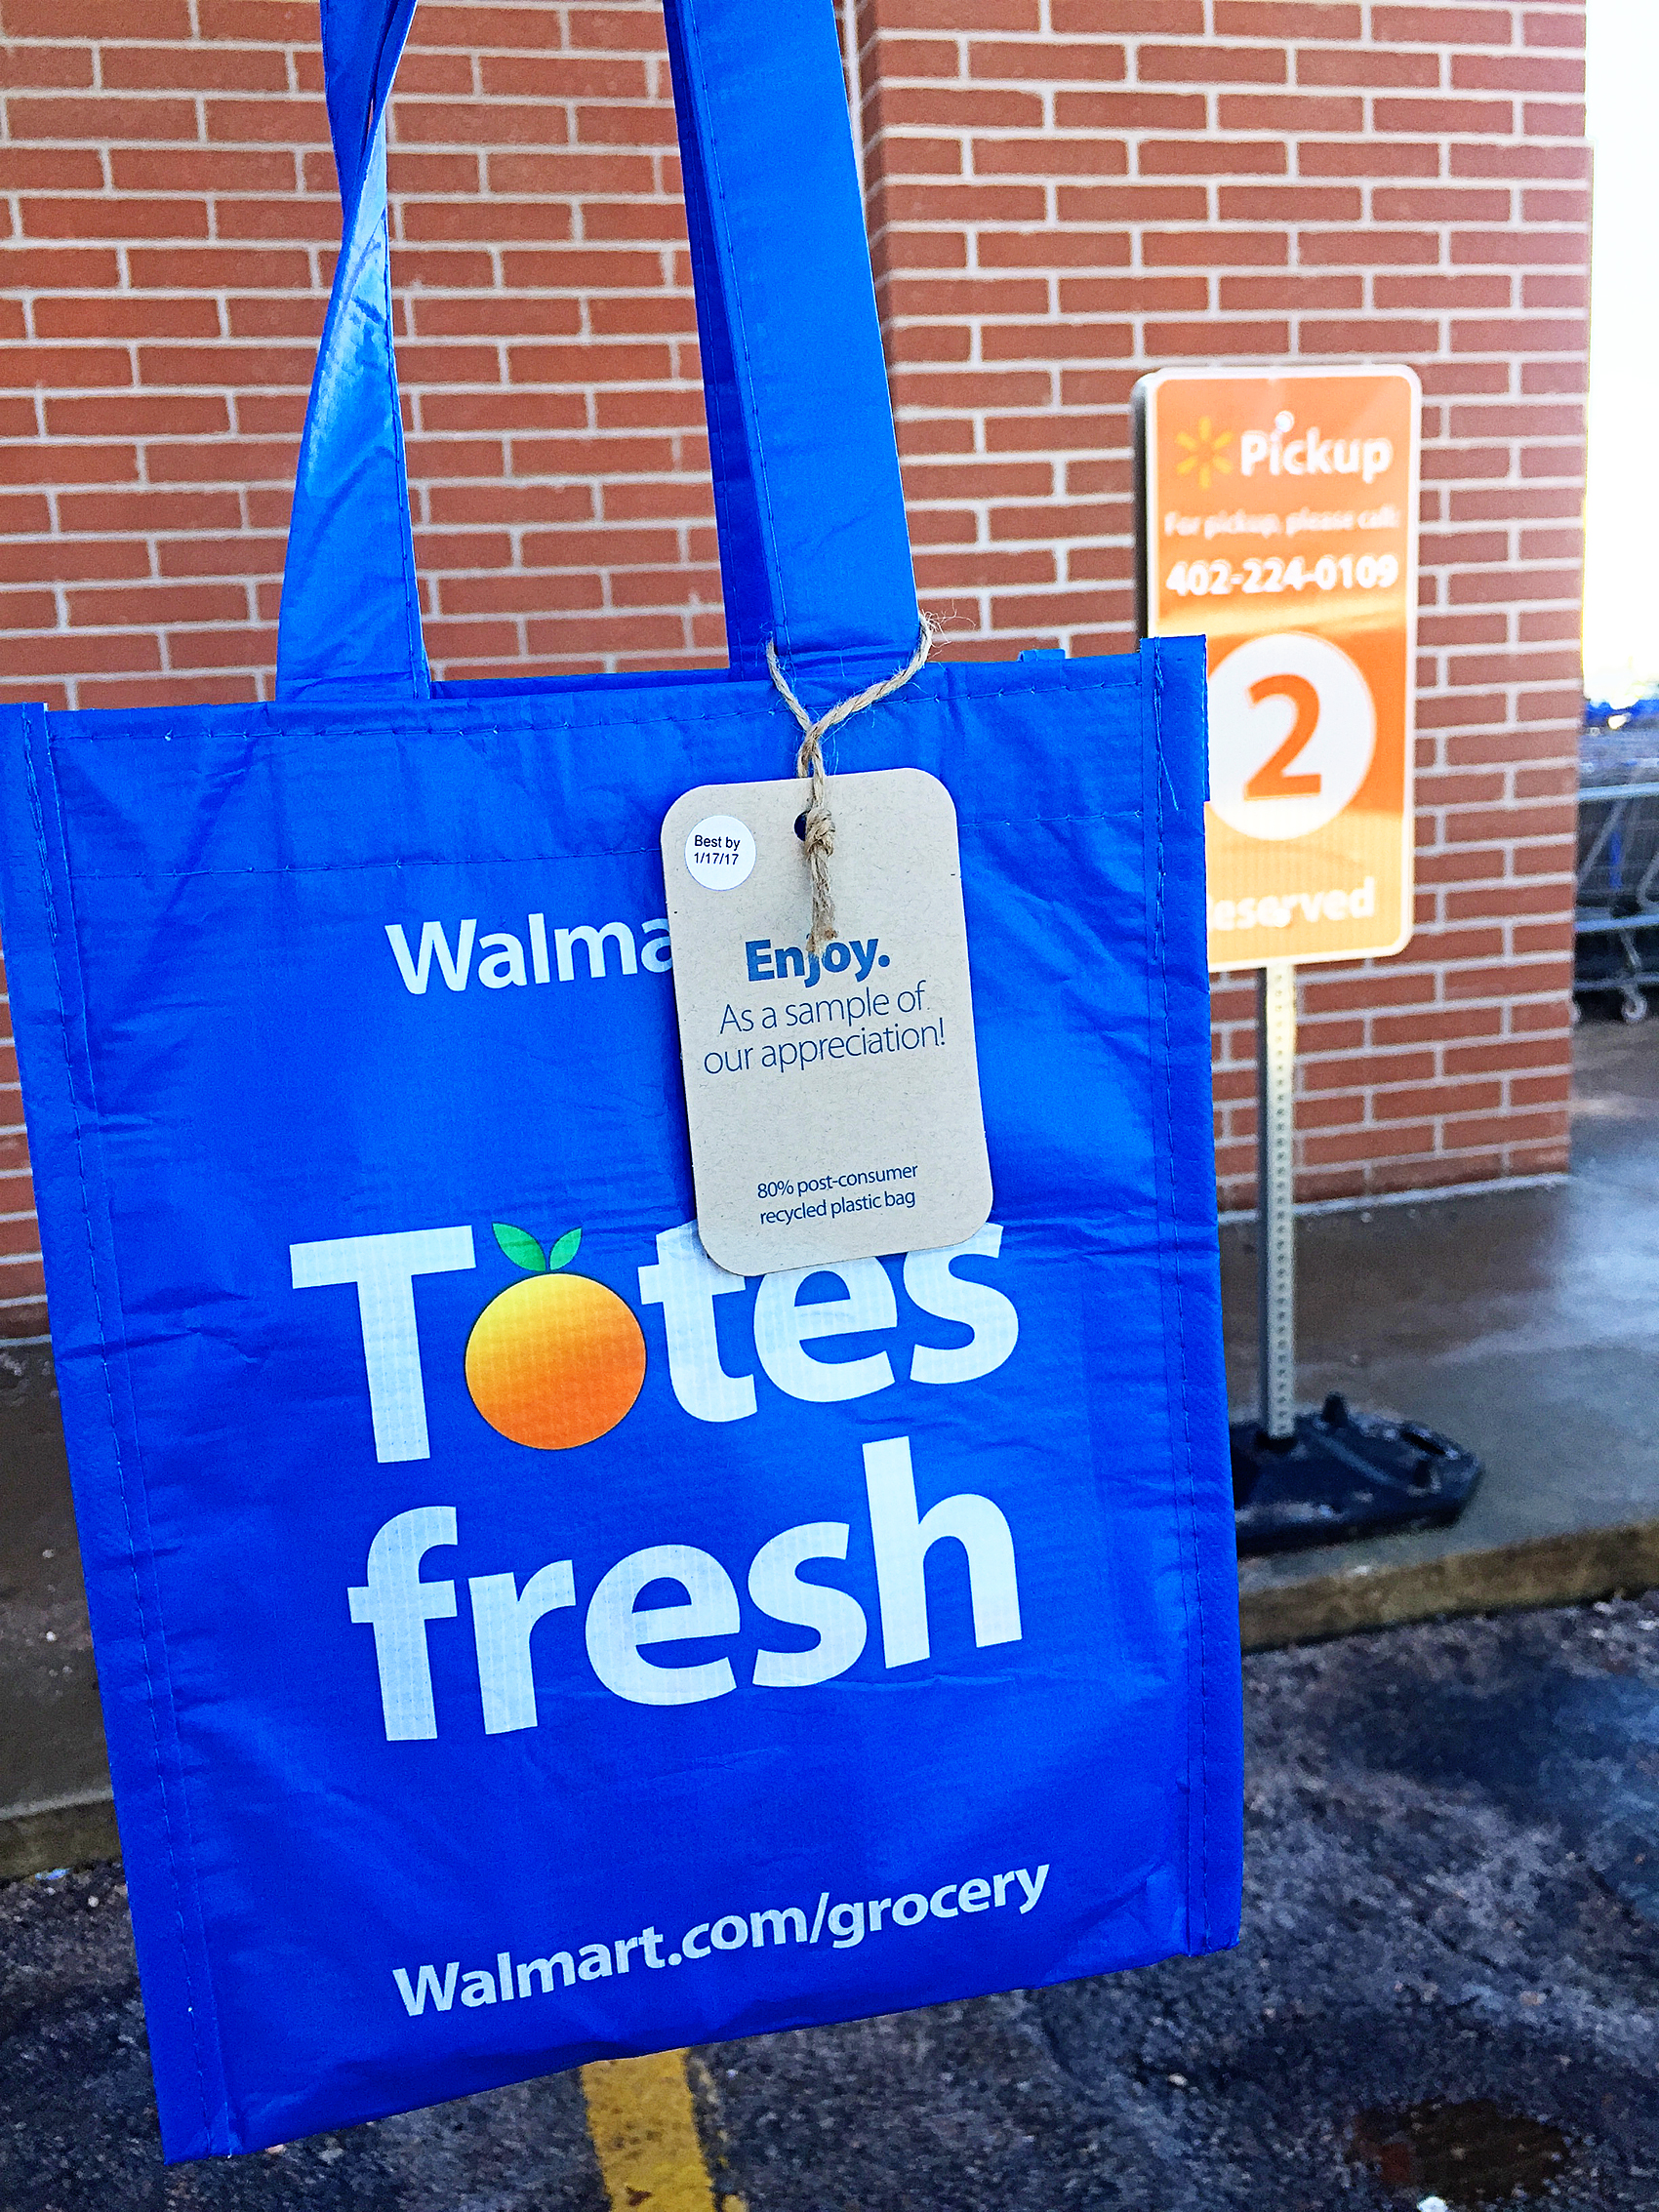 Walmart Grocery Welcome tote